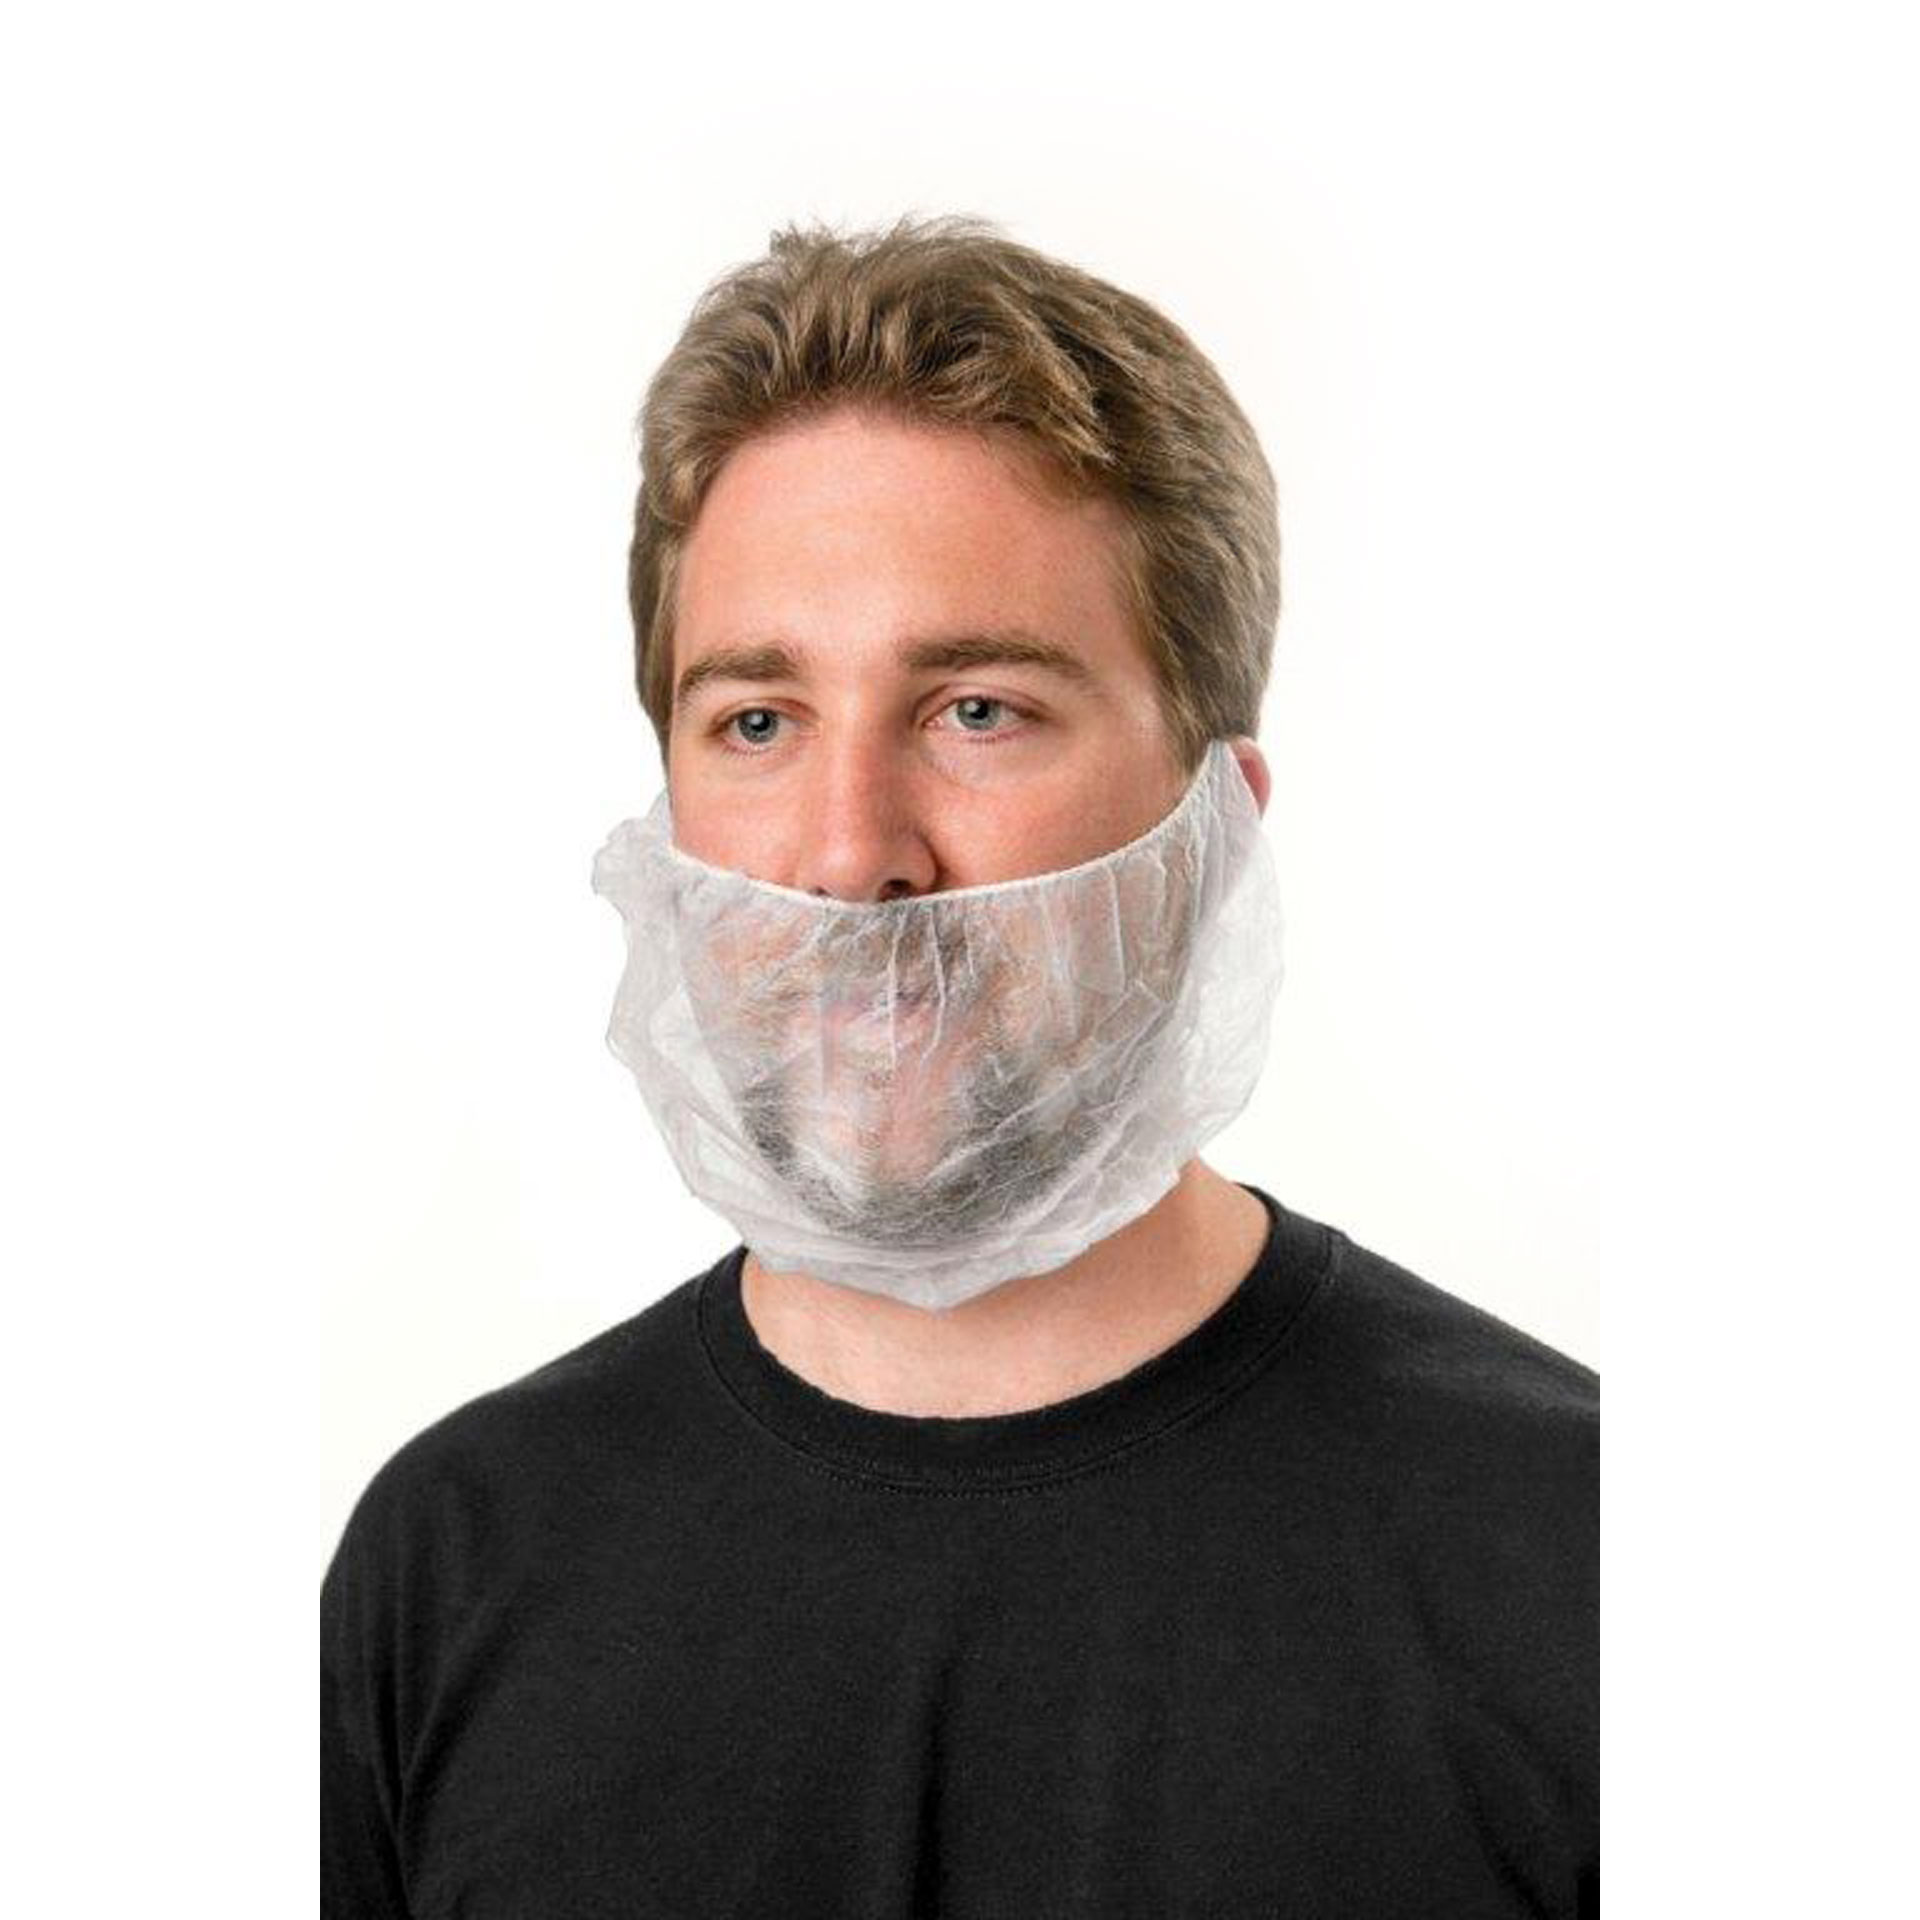 Royal Industries PPR BP hair net